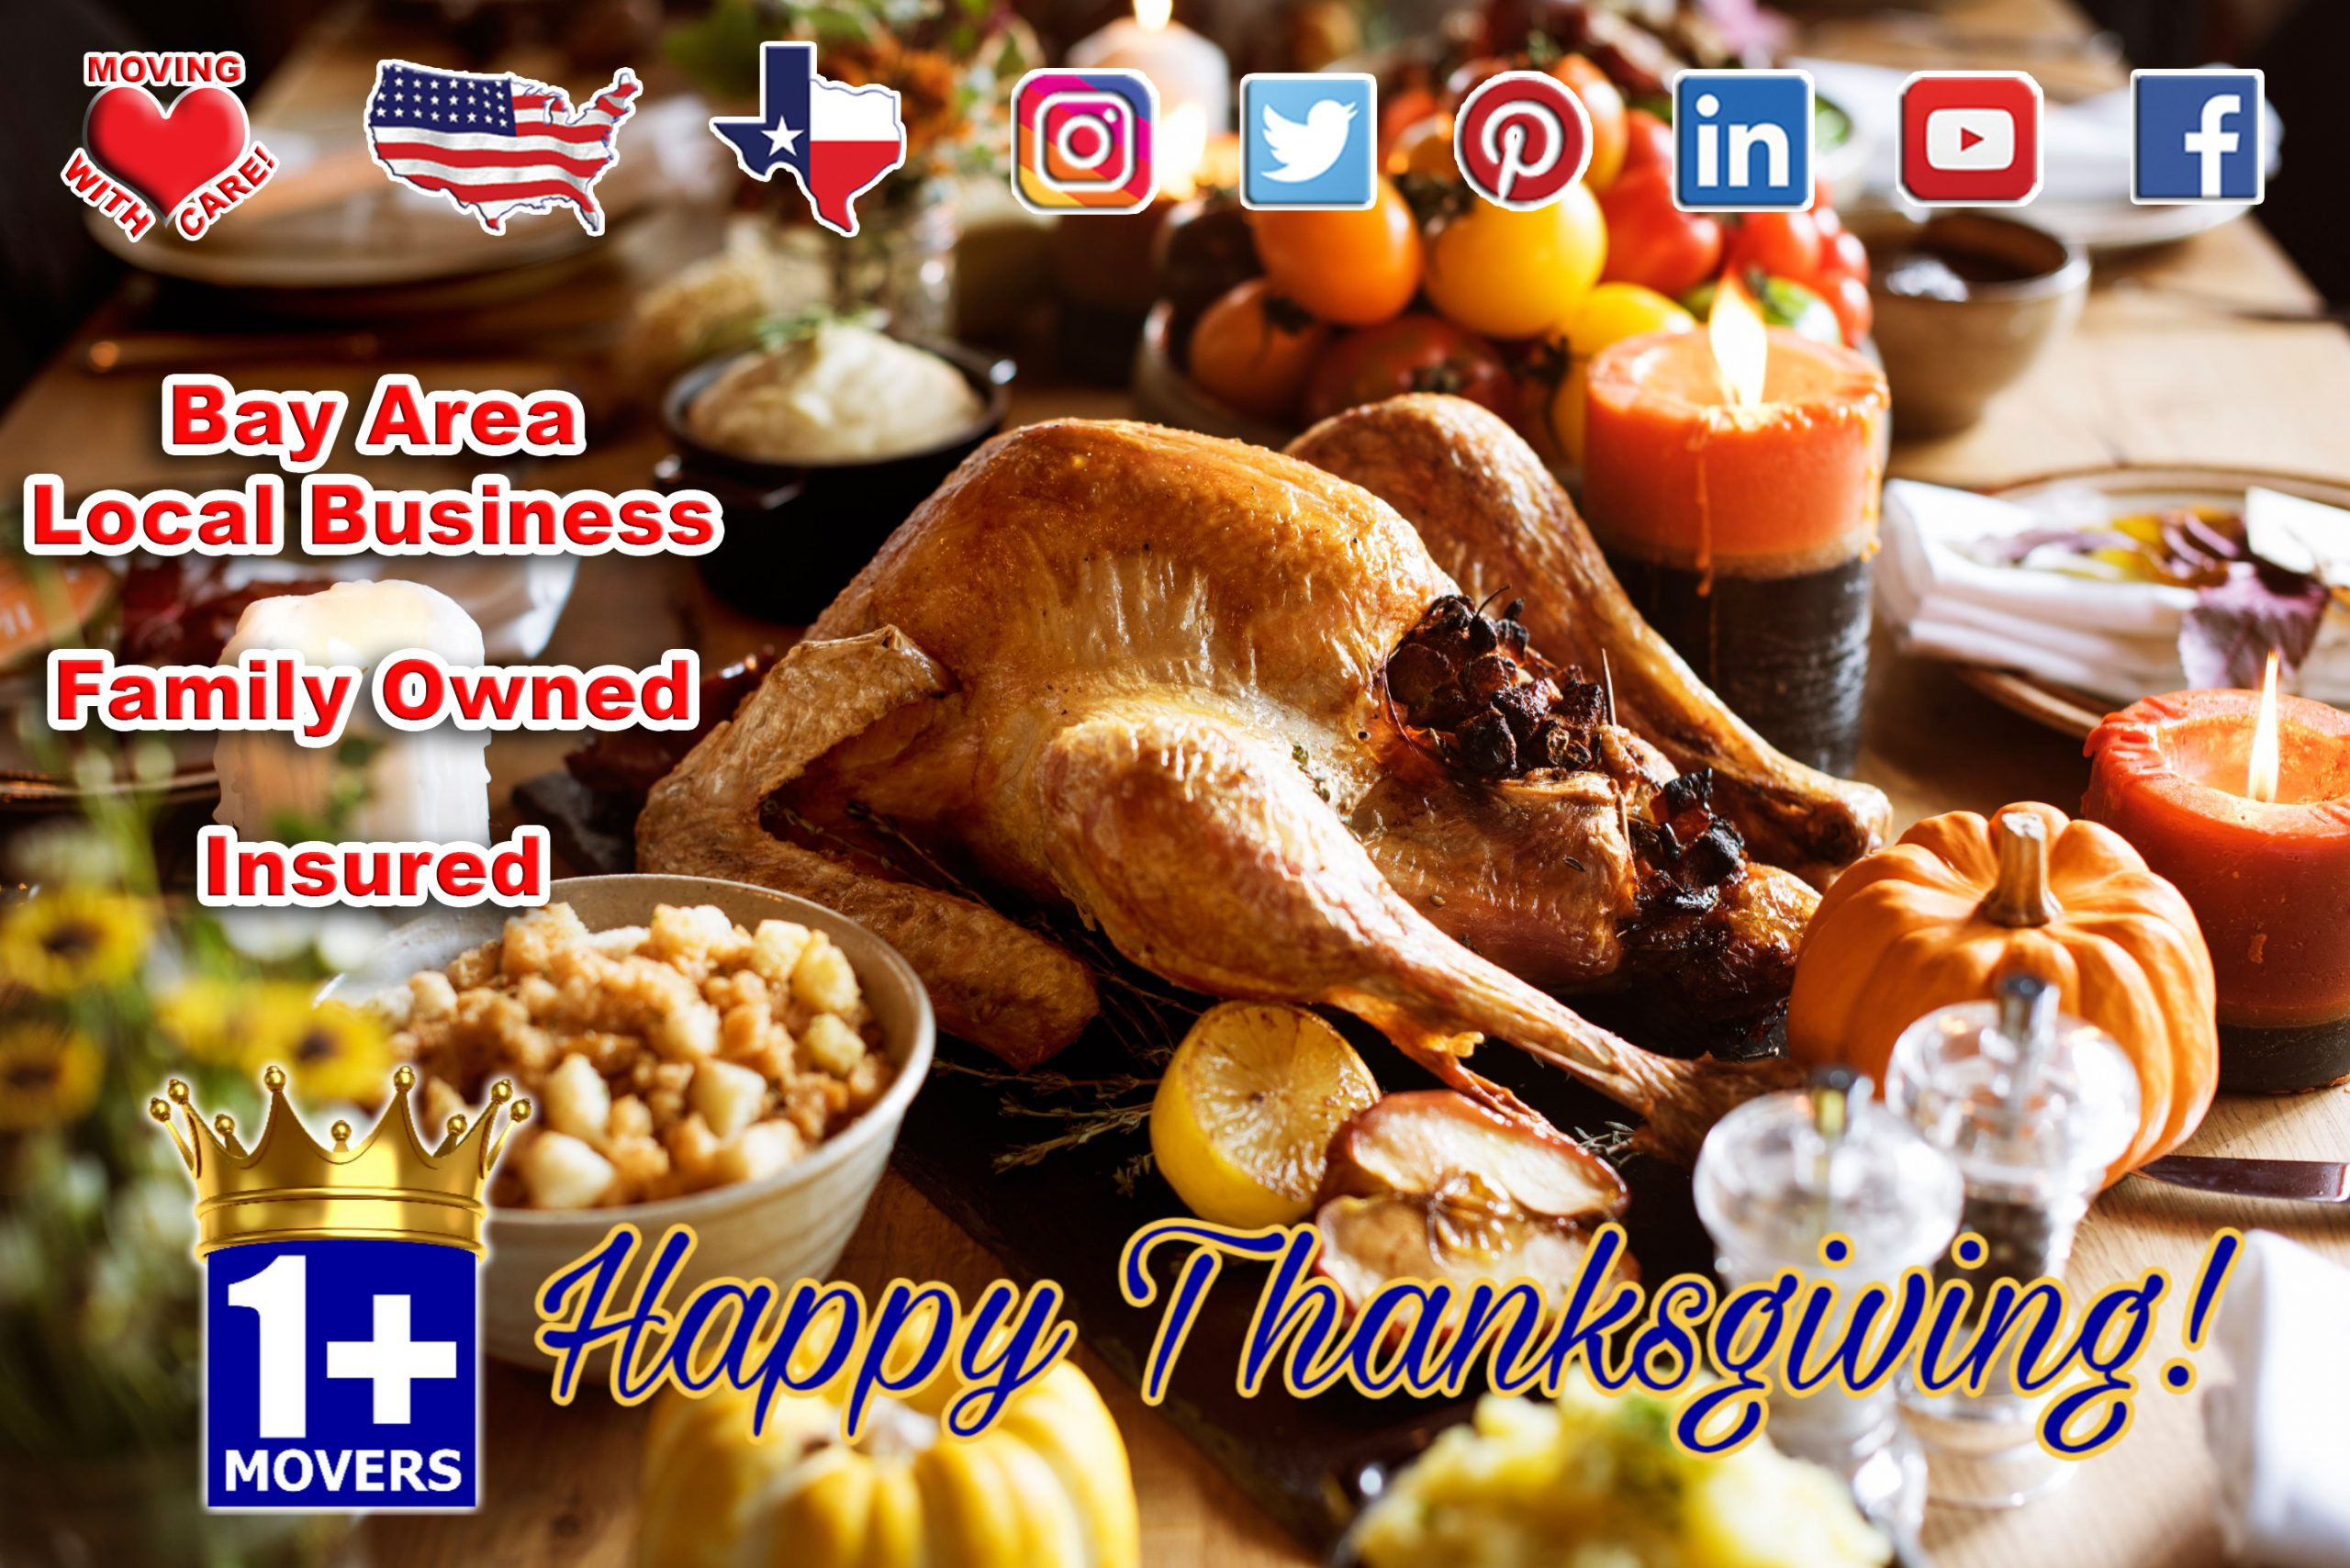 Image Of Thanksgiving Feast From 1+Movers